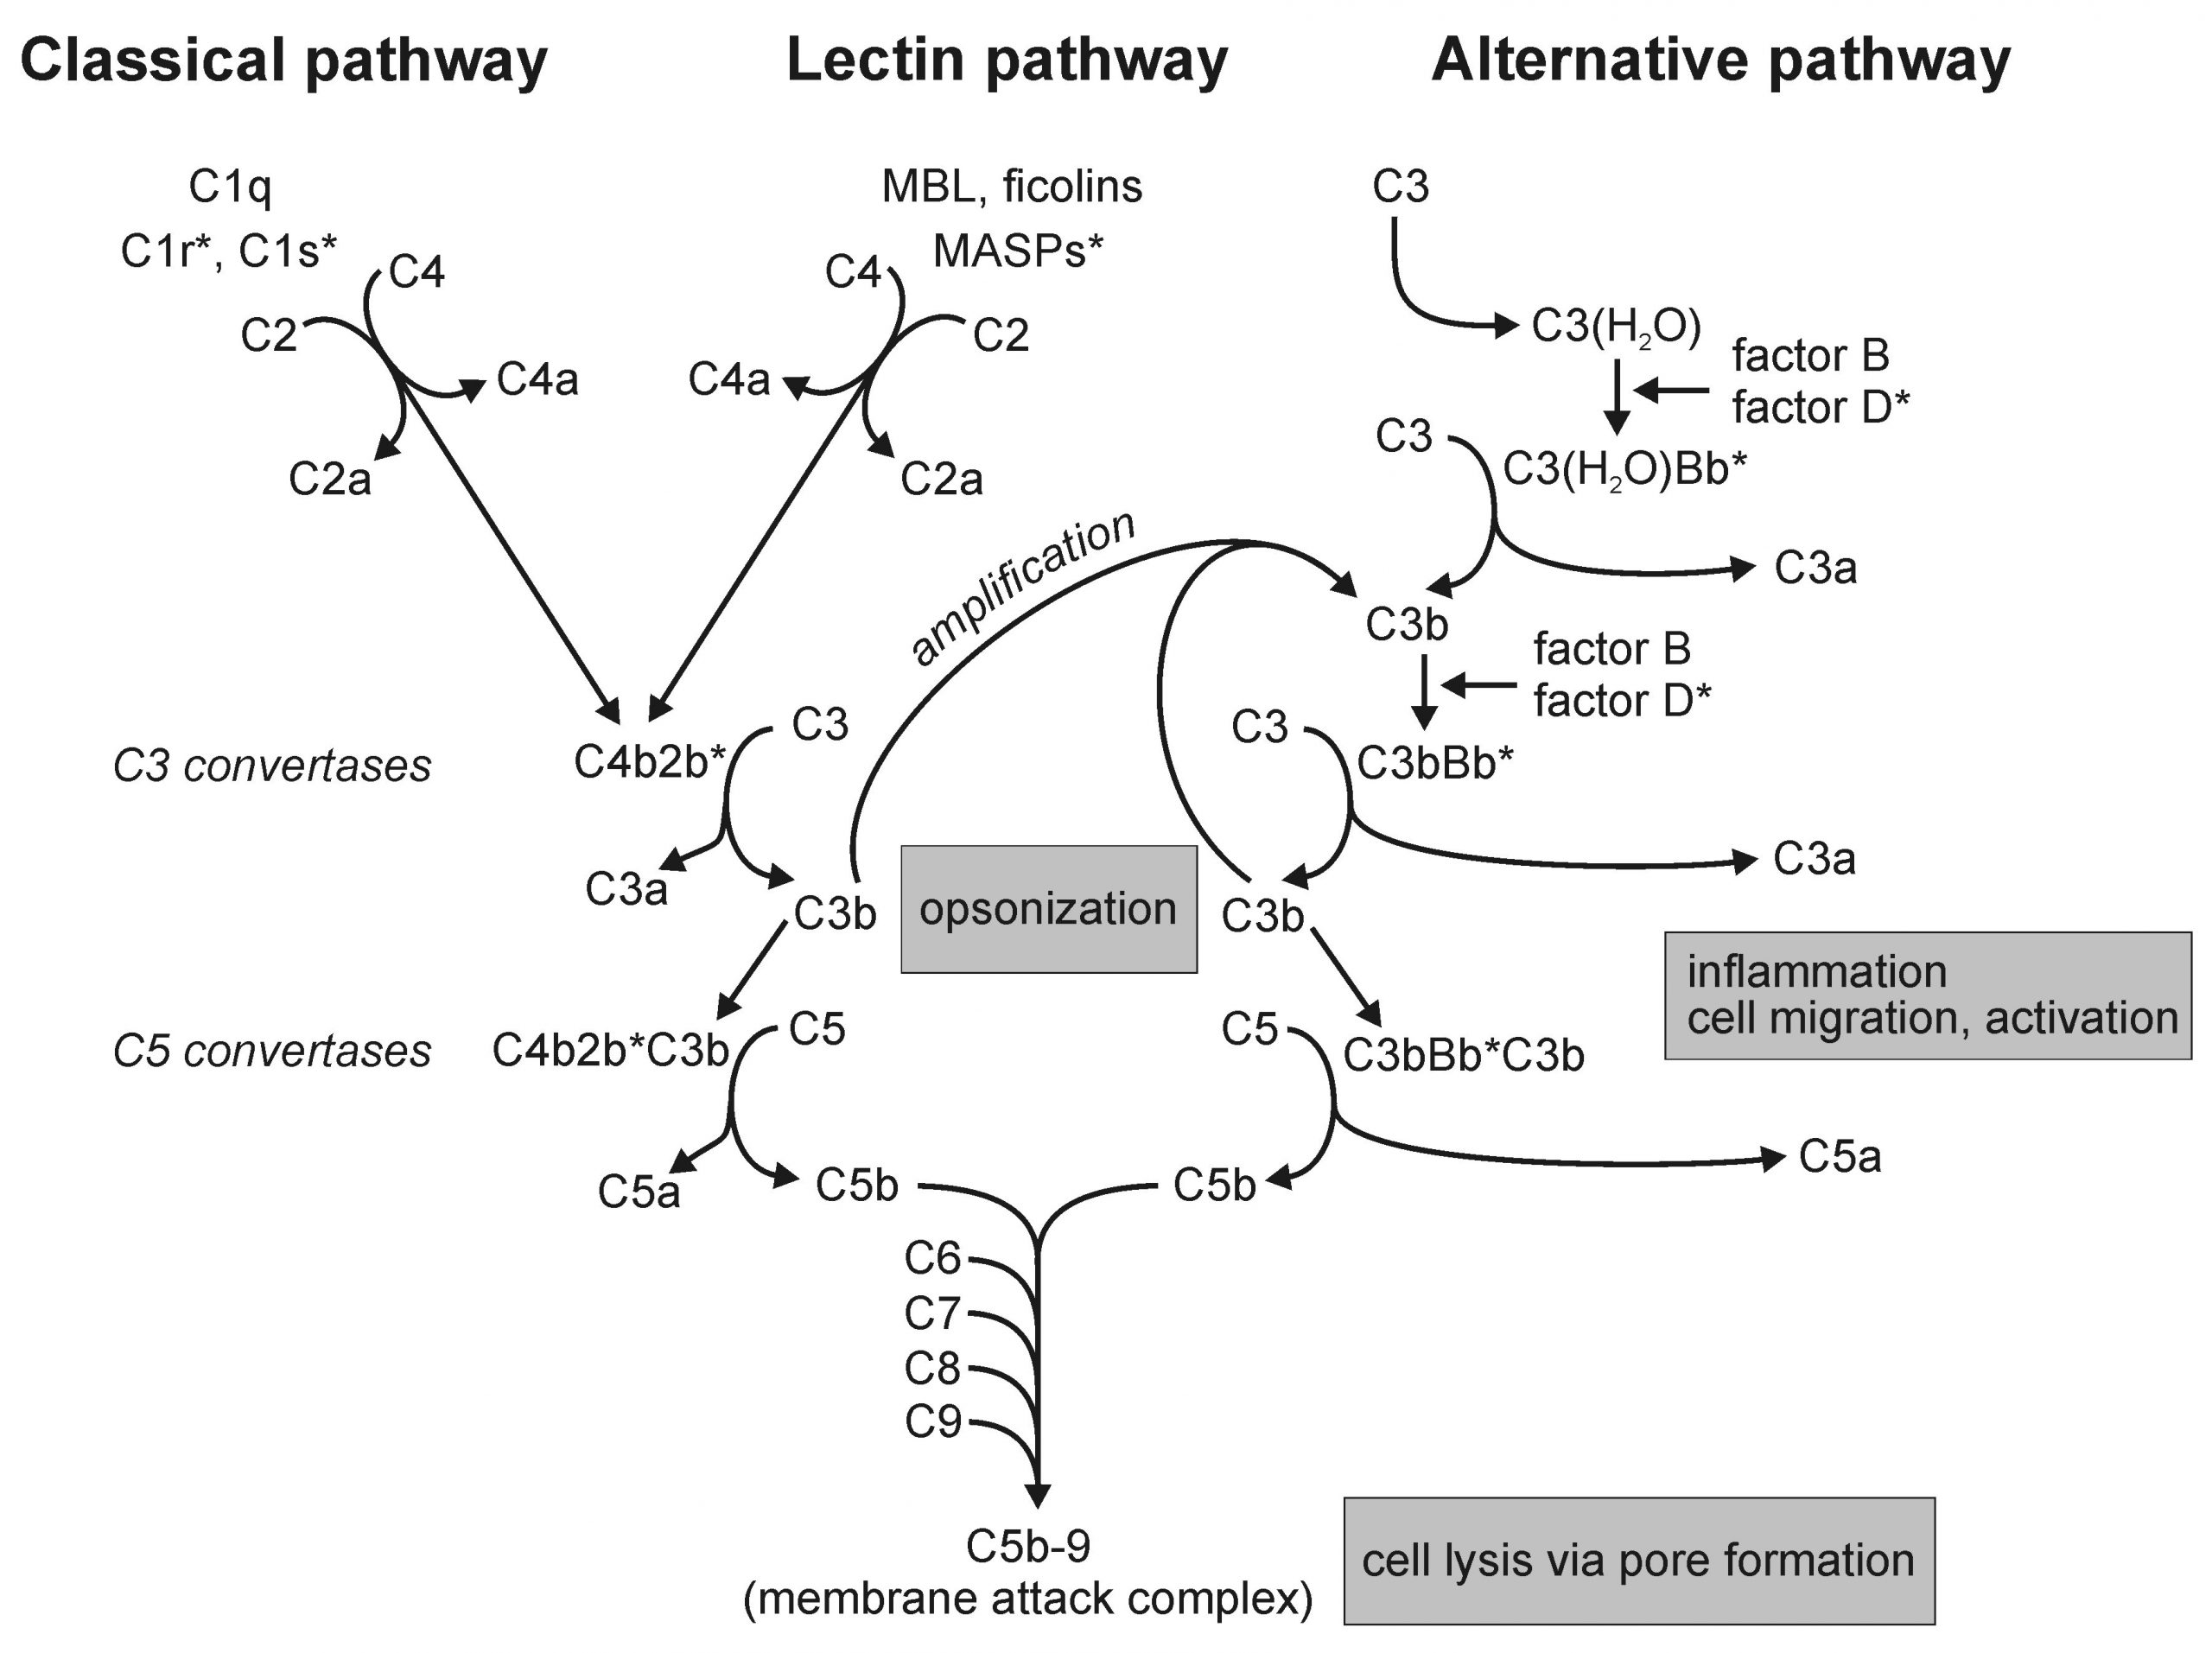 The Complement Pathway